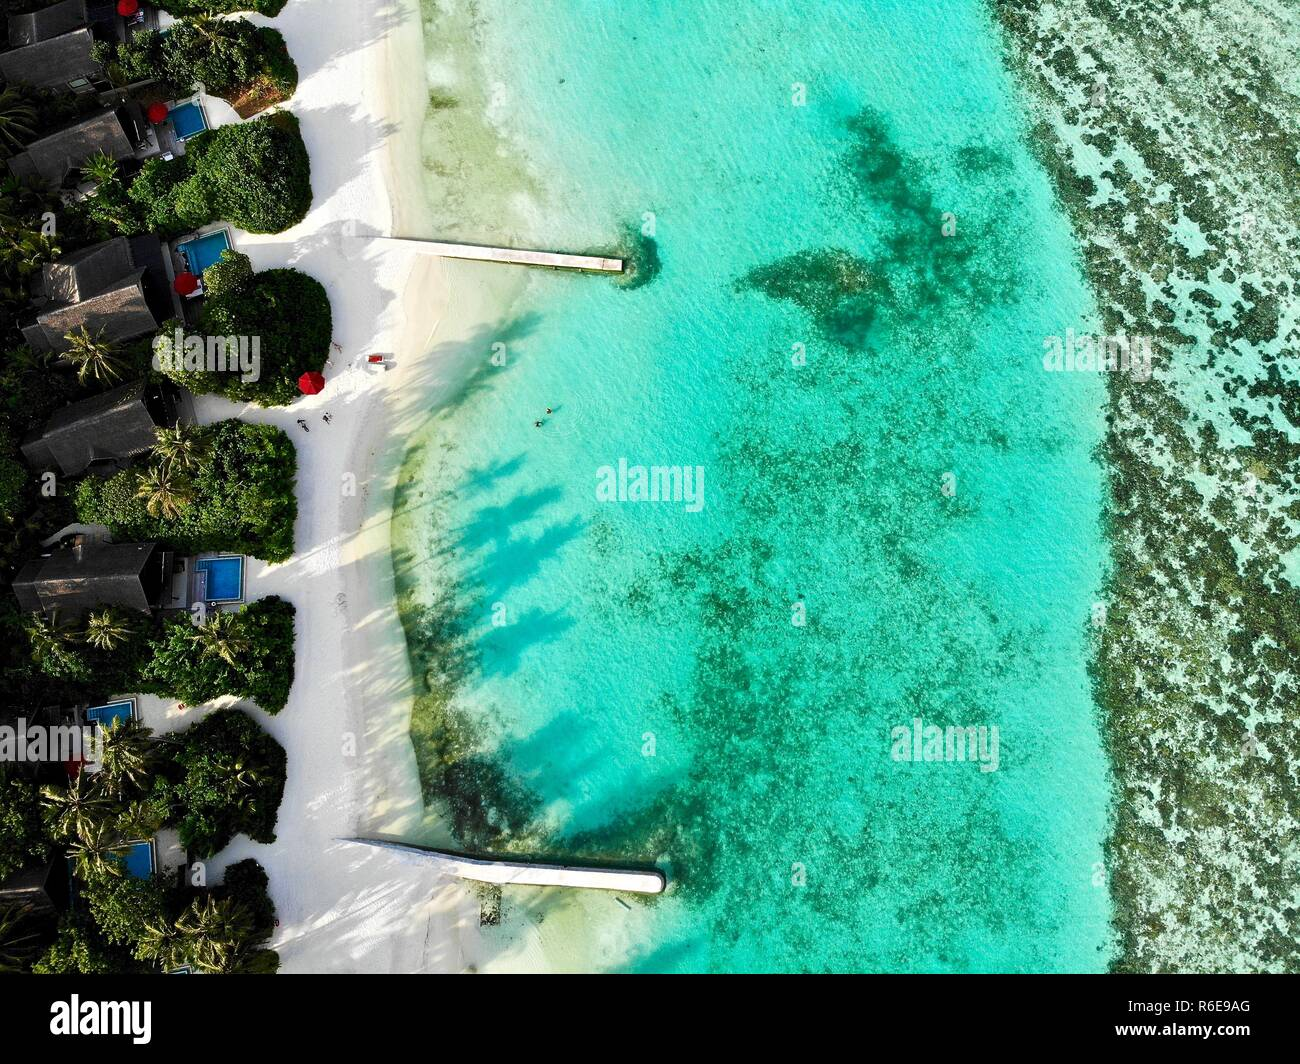 Maldives. All money raised with this picture will be donated to an ocean cleanup organization. #createawareness #IBproject #school Stock Photo